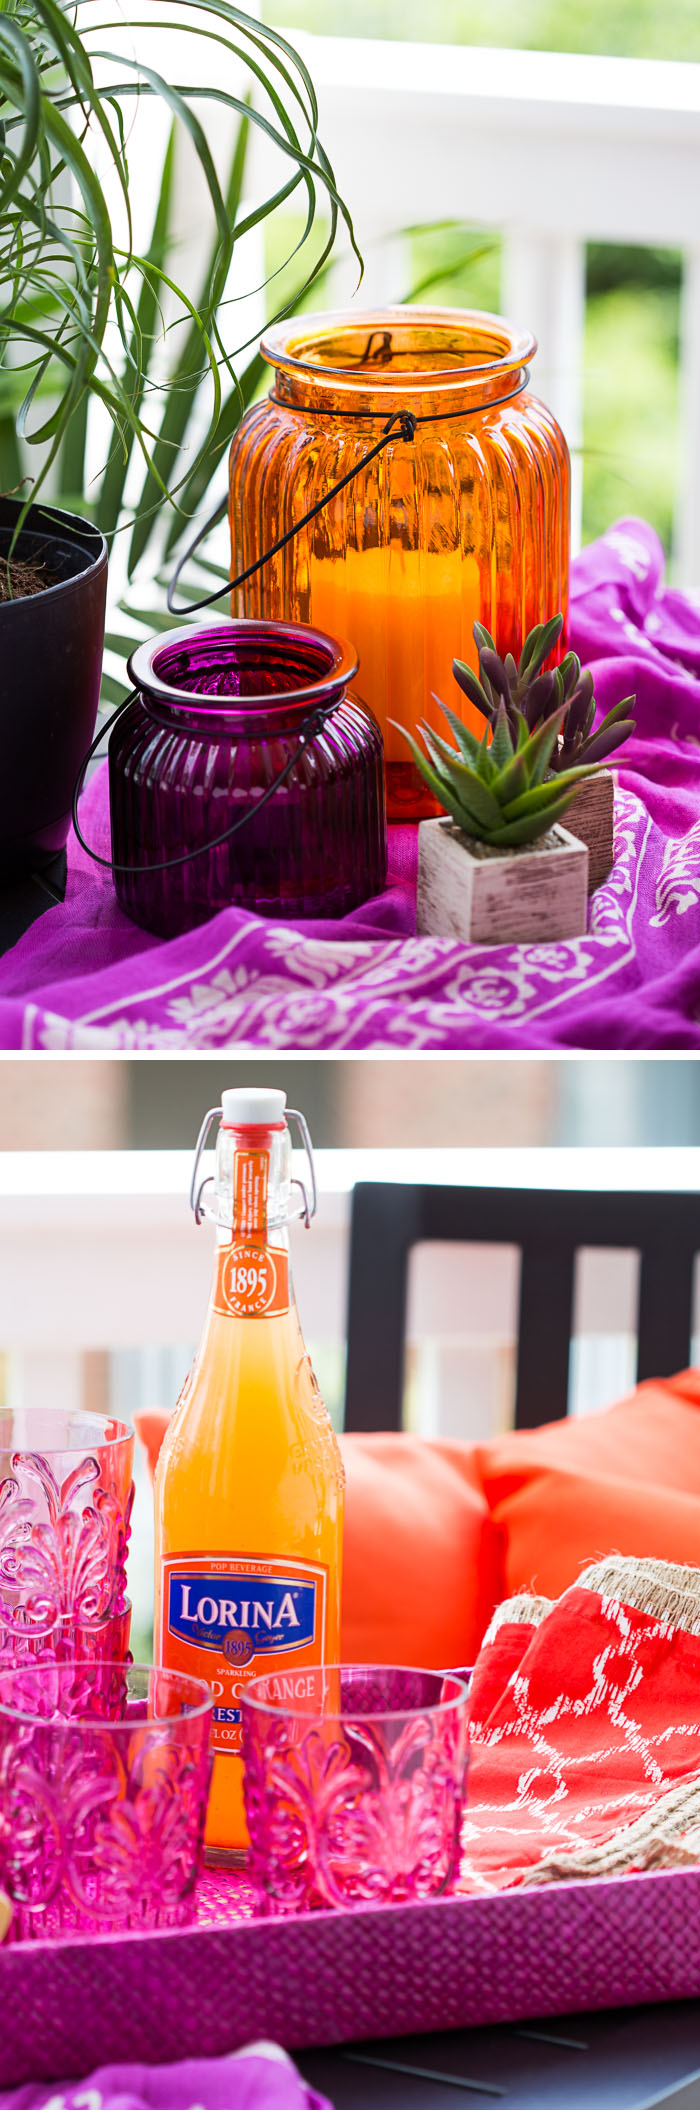 Tips for Throwing the Perfect Patio Party (and Willow Bird's 2015 Summer Playlist!)